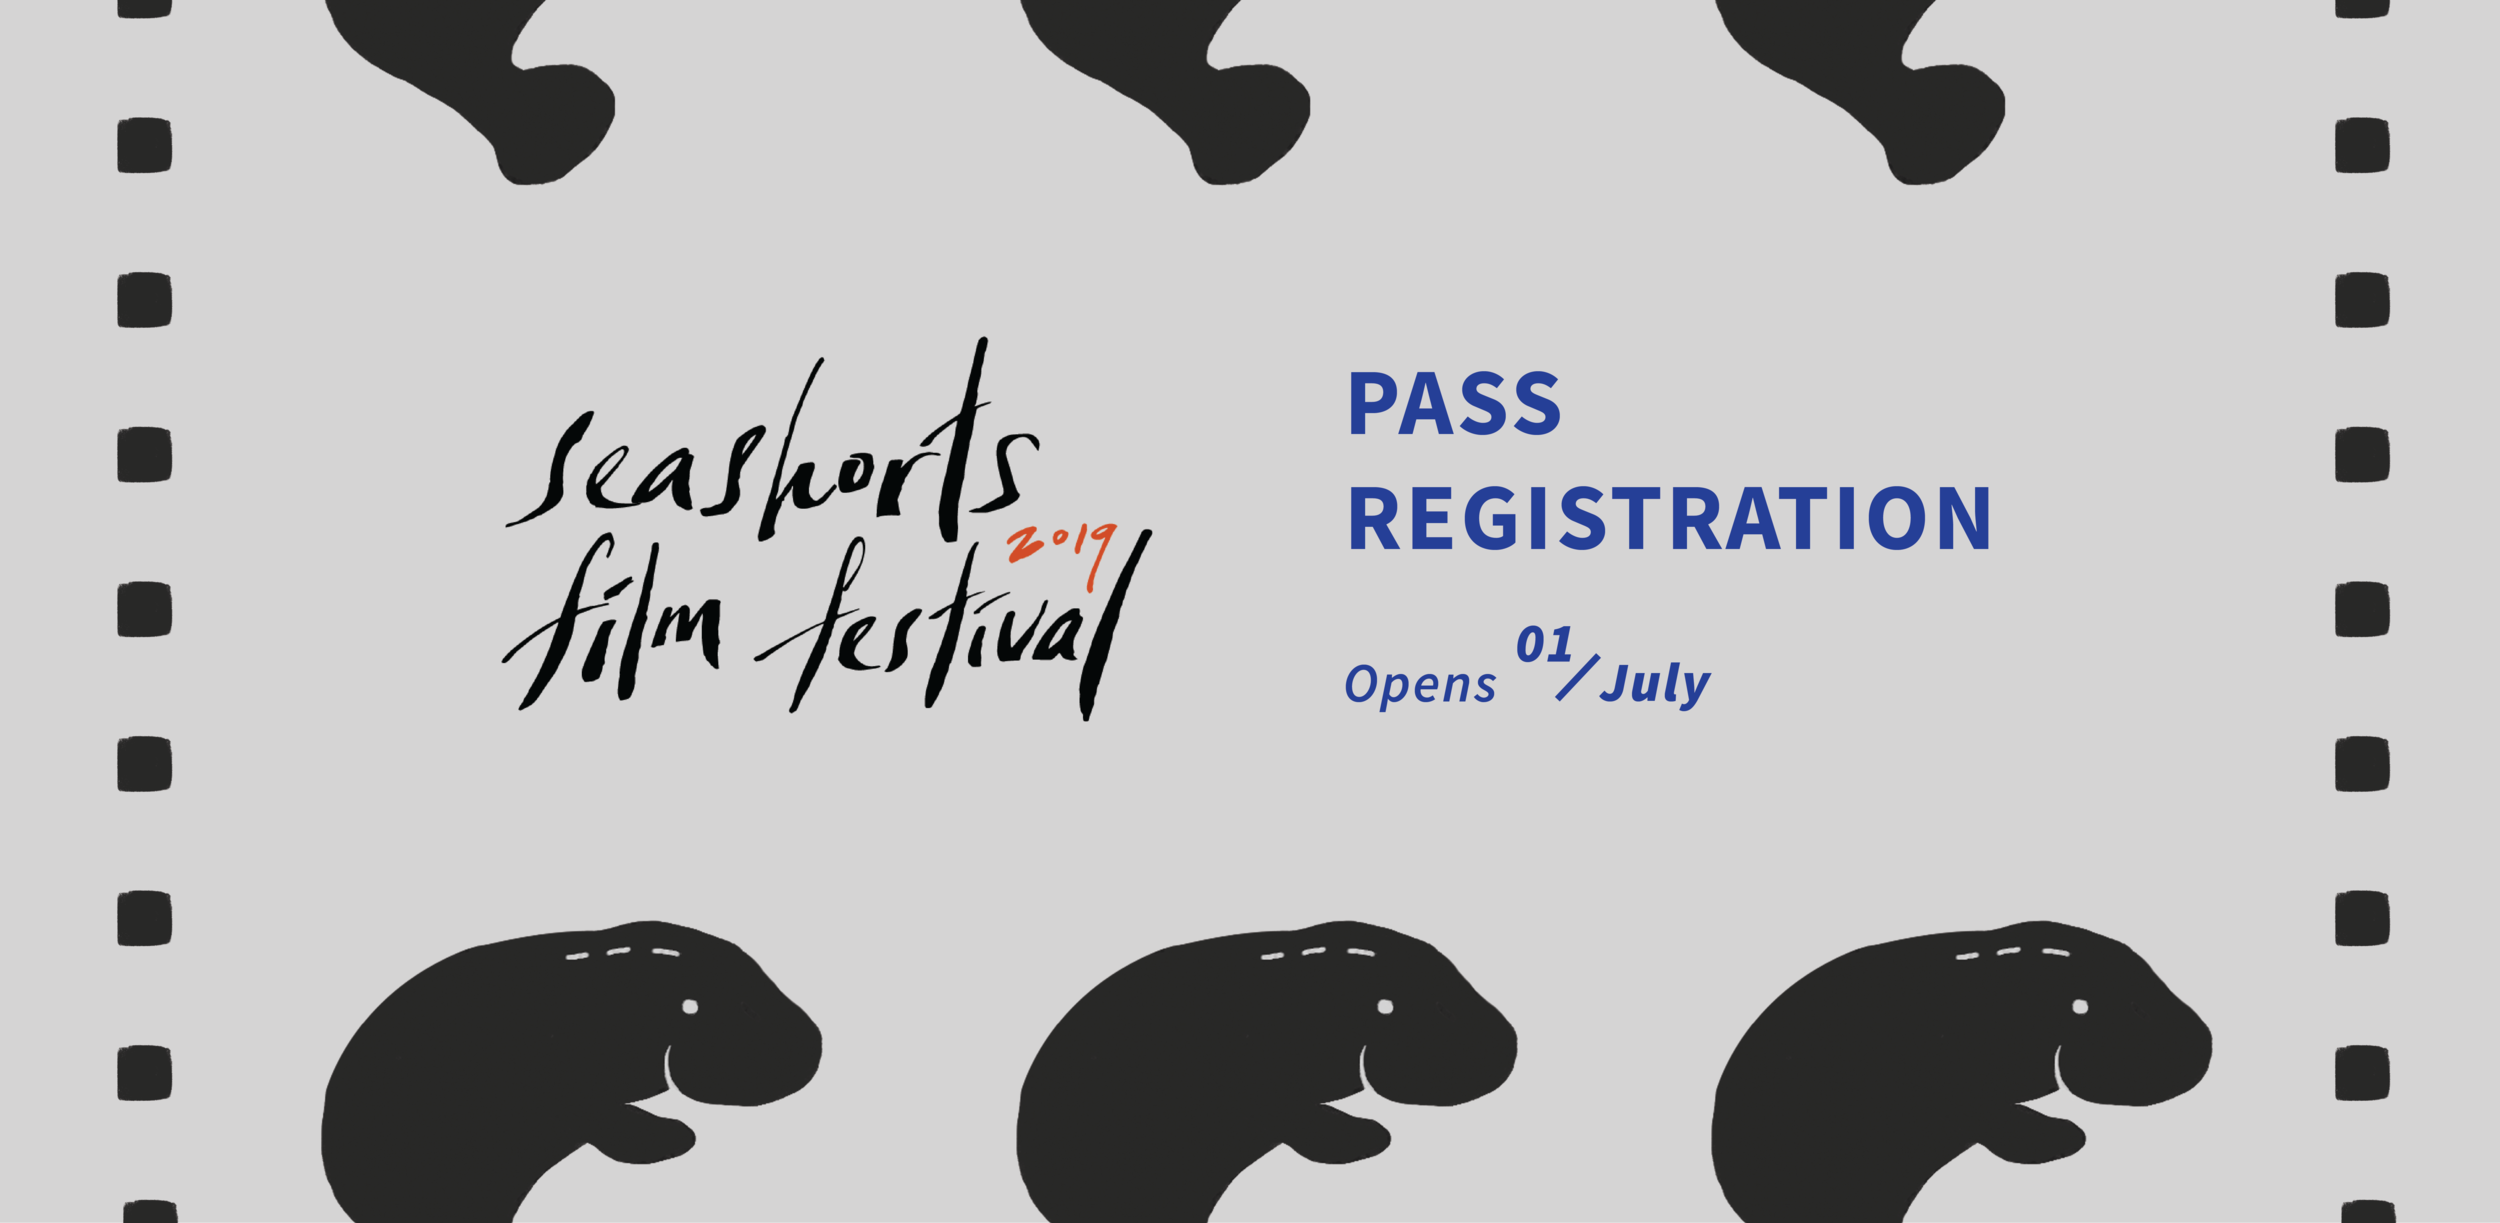 Pass Registration Opens 1st July, follow us:  http://www.nextnewwave.com.my/seashorts-passregistration